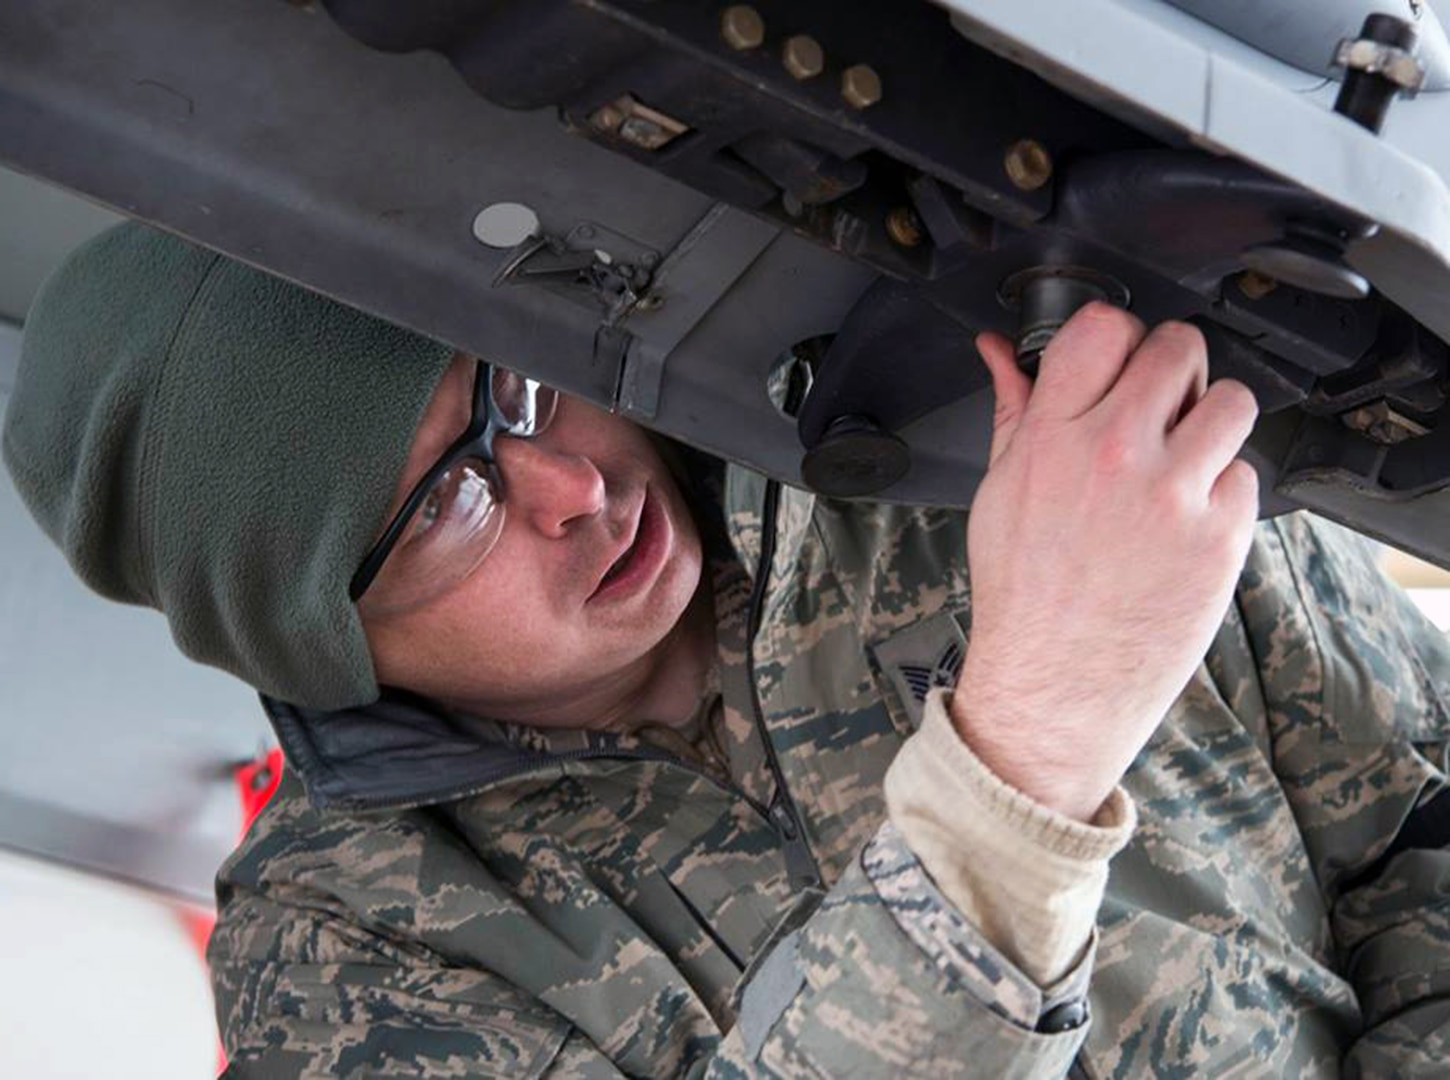 Tech. Sgt. Brian Green, a 149th Fighter Wing load standardization crewmember, adjusts the underside of an F-16 Fighting Falcon wing during weapons training at Joint Base San Antonio-Lackland Feb. 9.